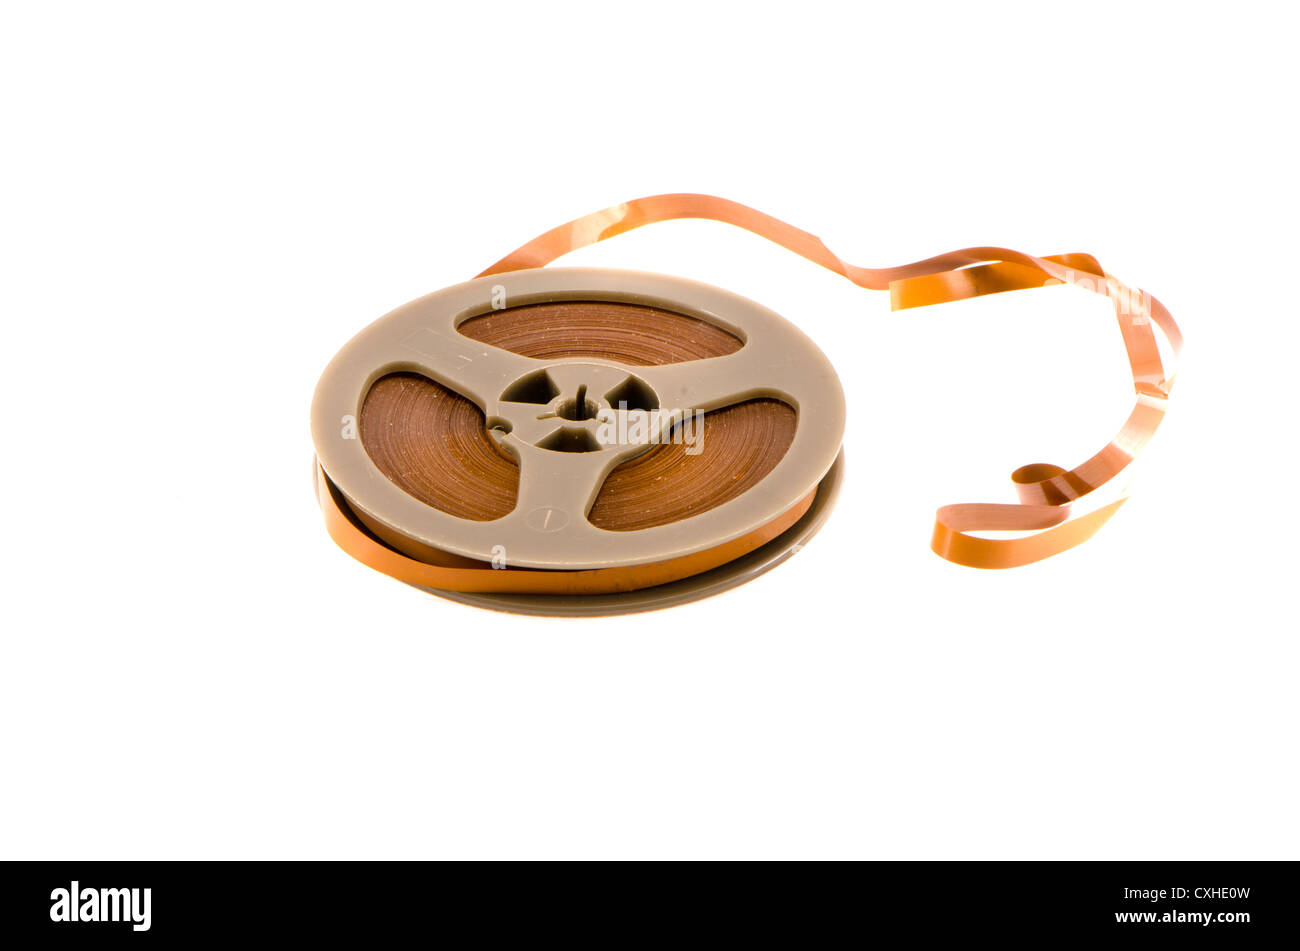 old recorder audio tape isolated on white background - Stock Image